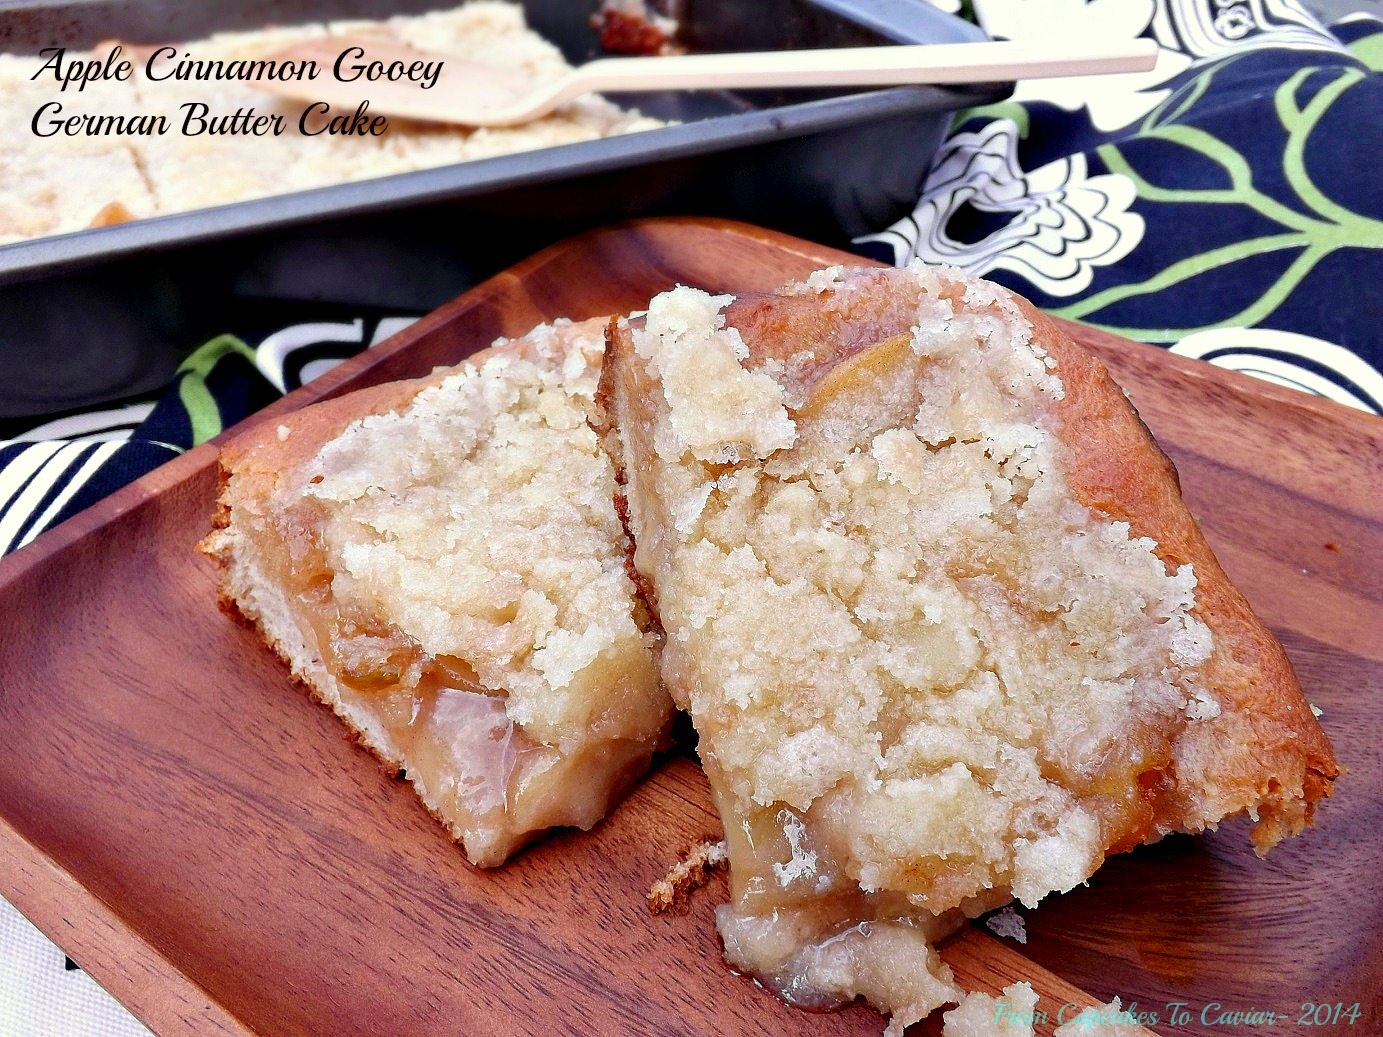 Apple Cinnamon Gooey German Butter Cake | From Cupcakes To Caviar